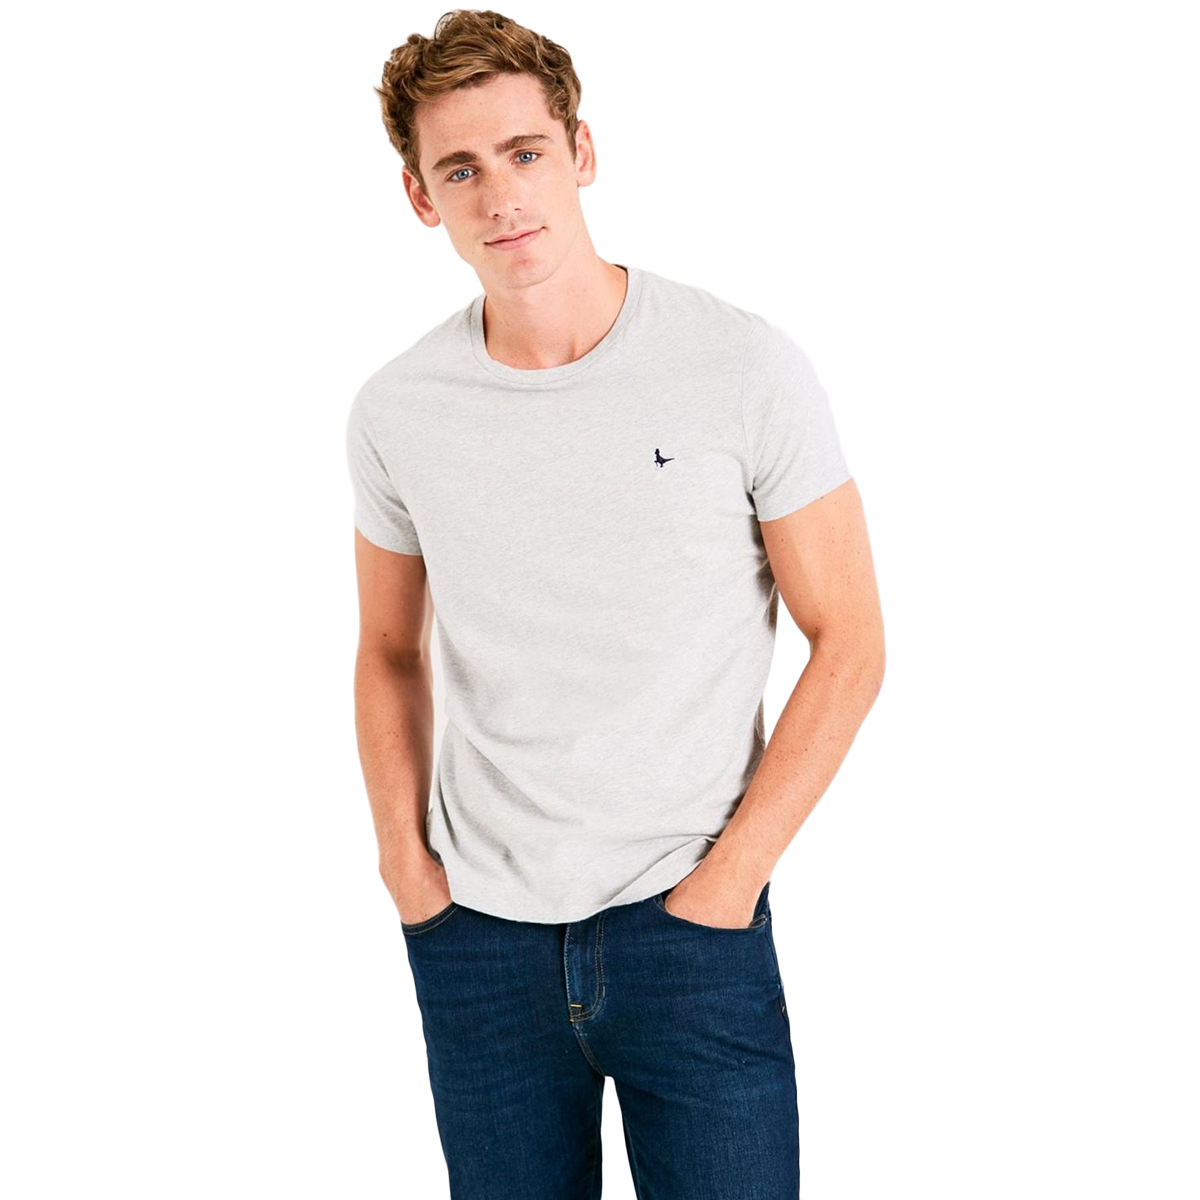 Jack Wills Men's Sandleford Short-Sleeve Tee - Black, XXS